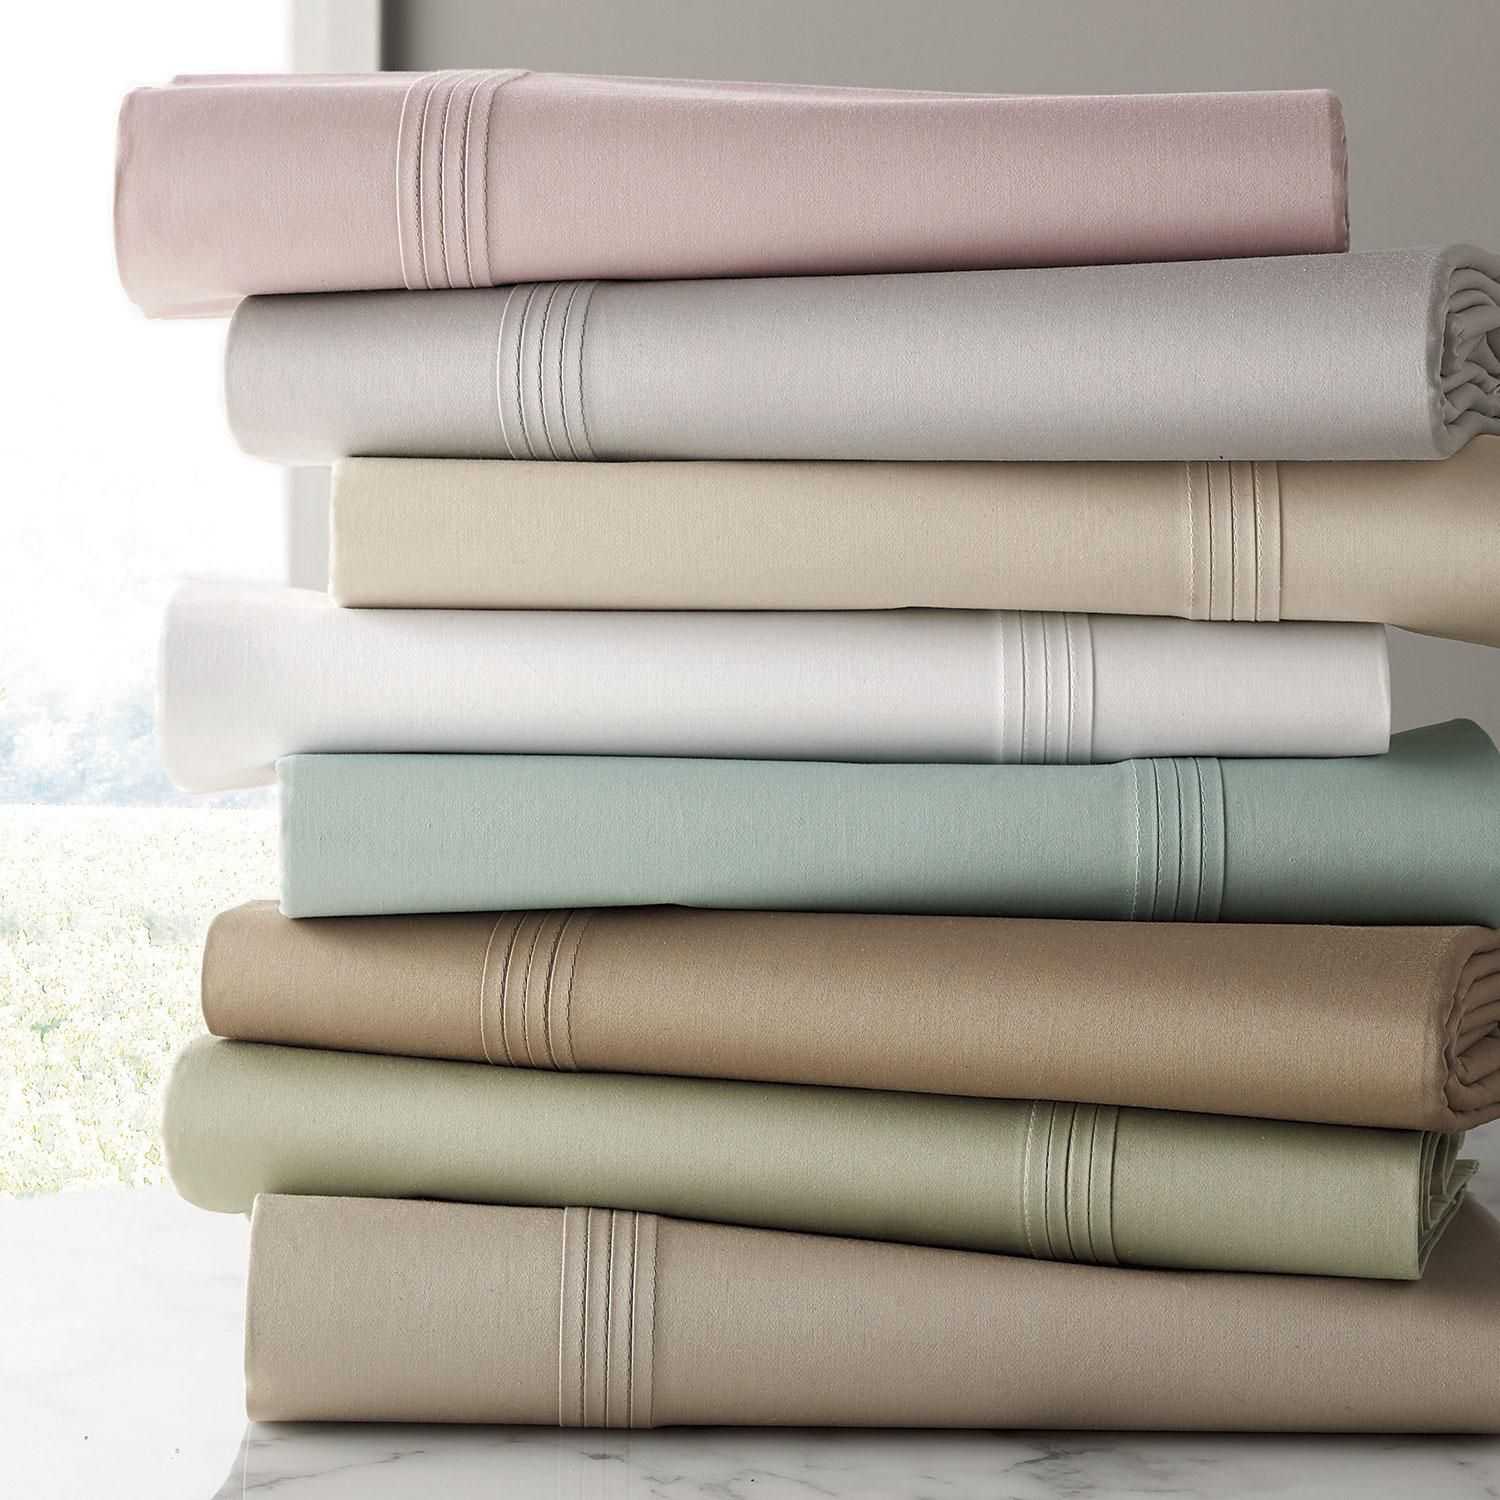 Legends 600 Thread Count Sateen Fitted Sheet At The Company Store